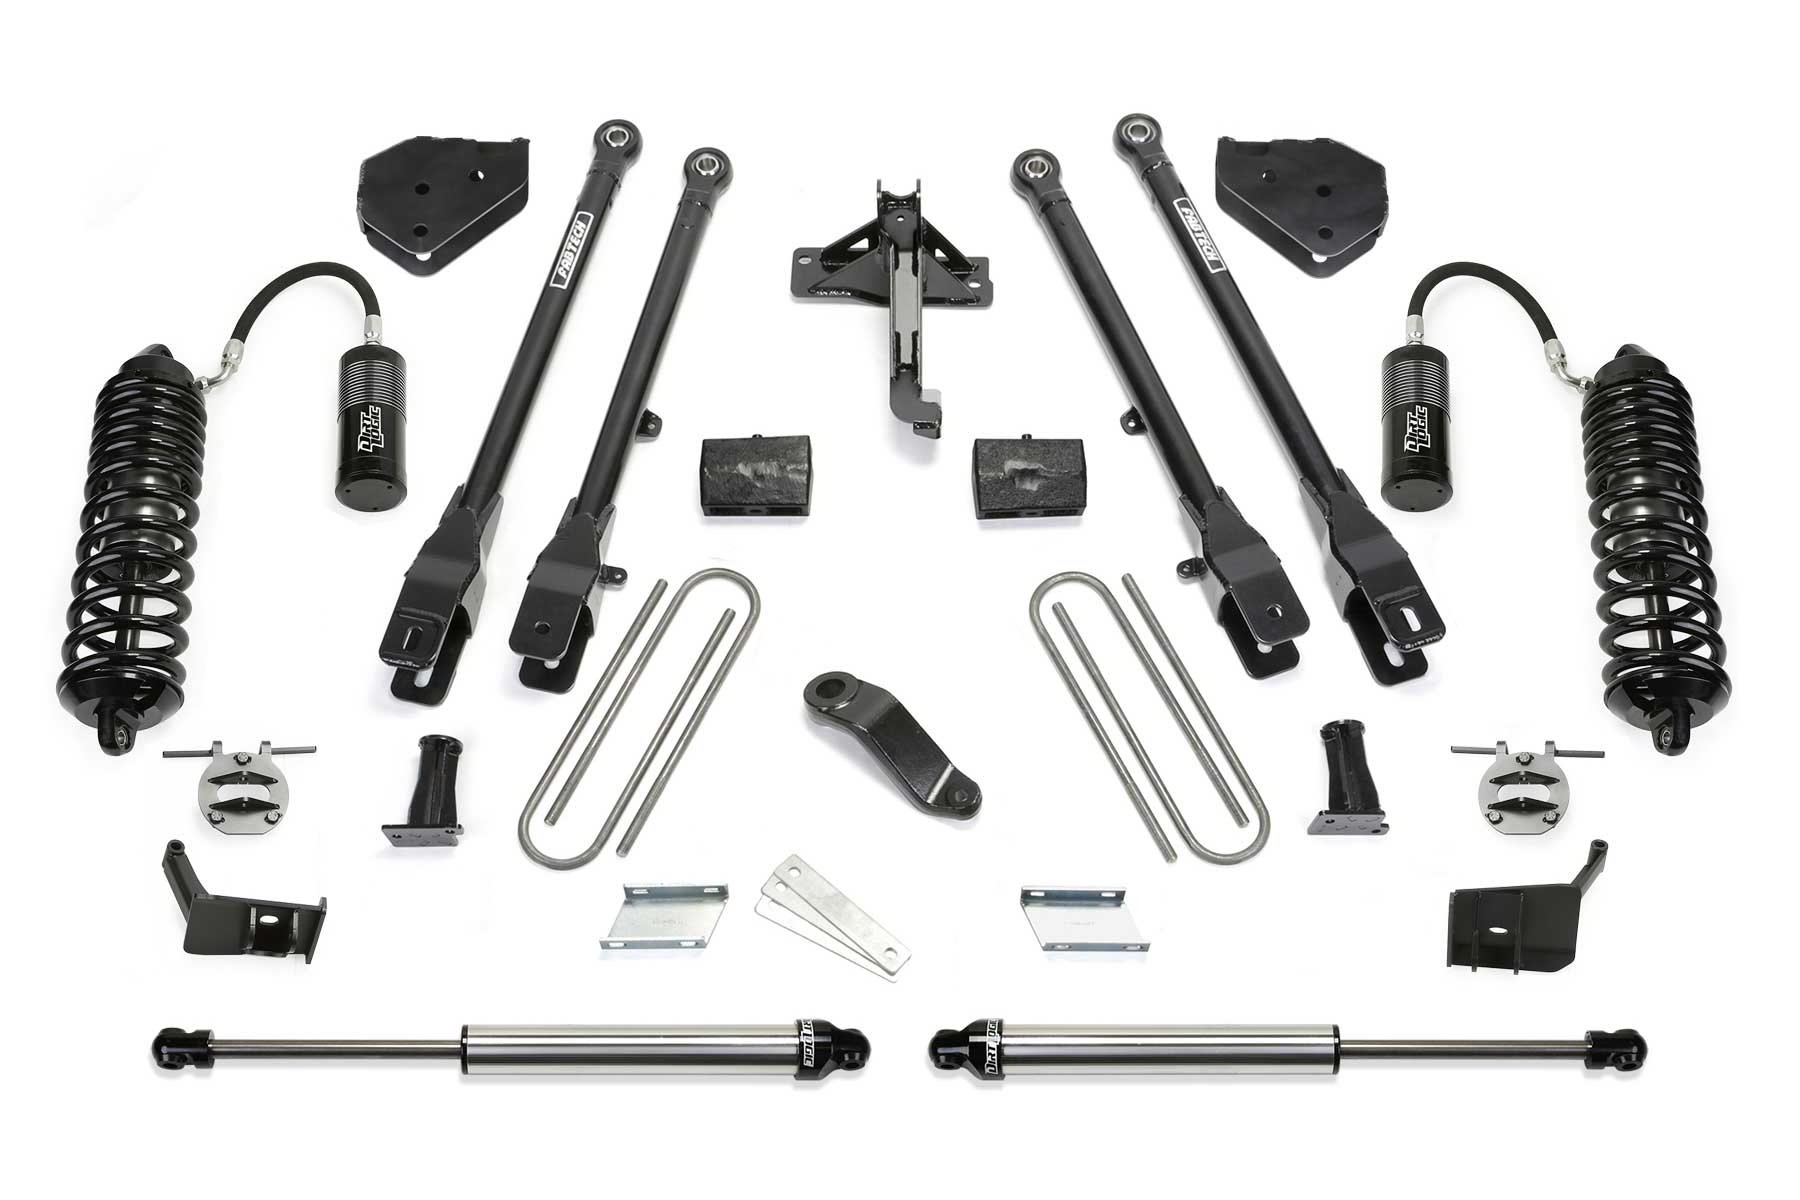 4″ 4 LINK SYSTEM W/ FRONT DIRT LOGIC 4 0 RESI COILOVERS & REAR DIRT LOGIC  2 25 SHOCKS 2017-19 F250/F350 4WD